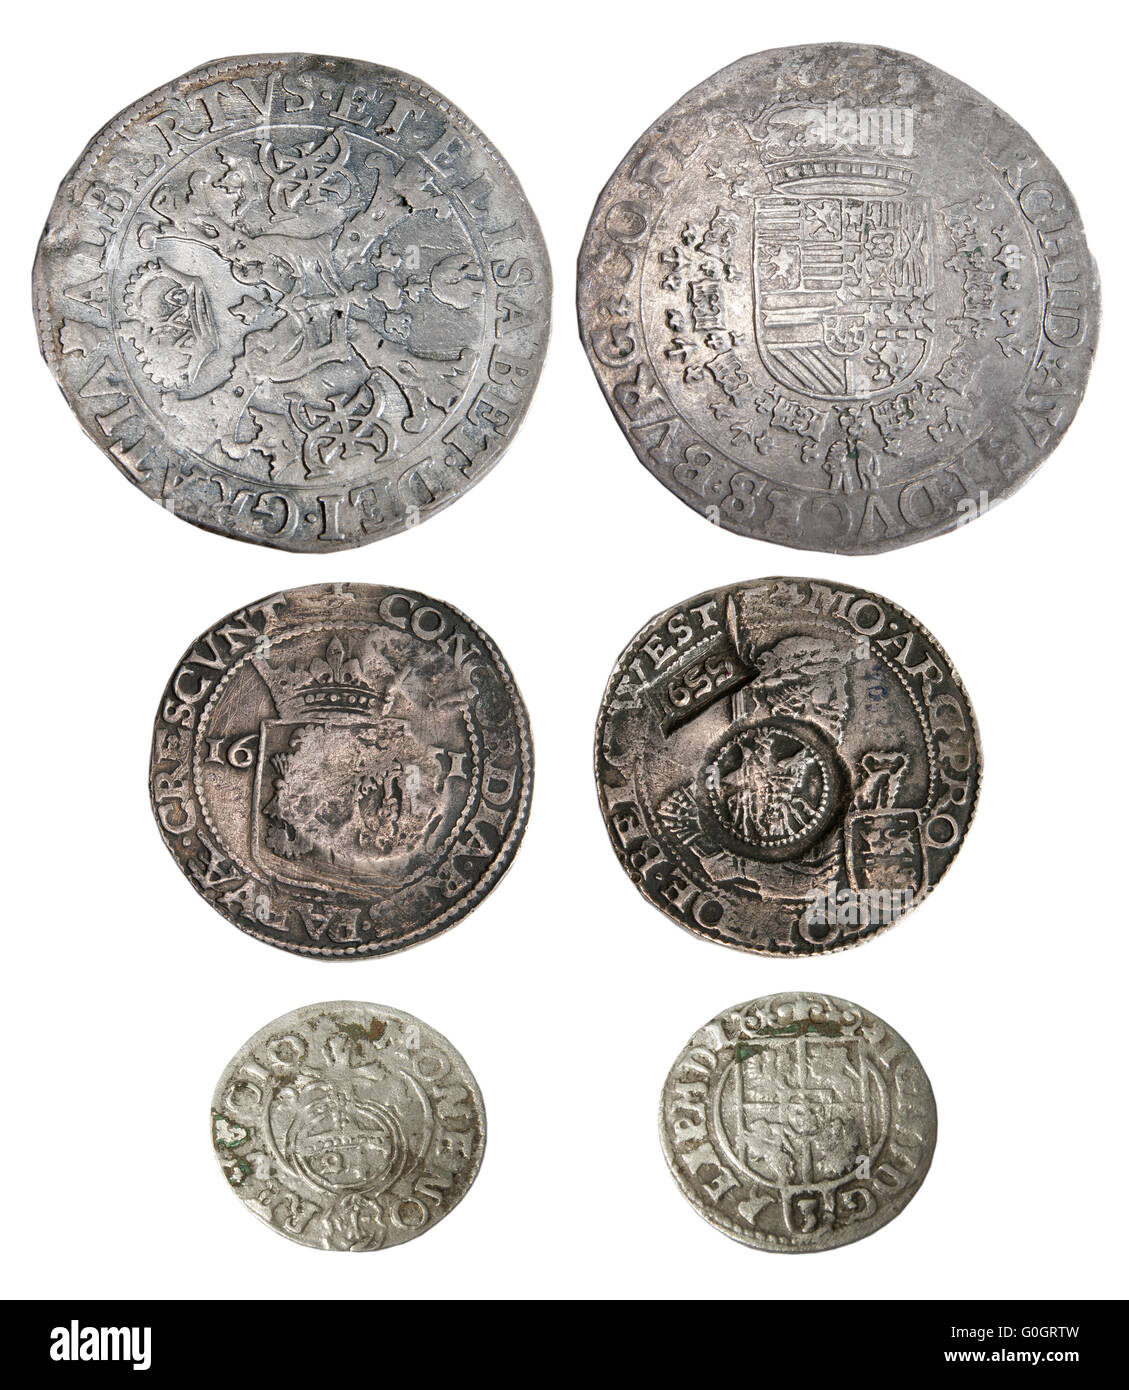 Ancient coins of different metals - Stock Image